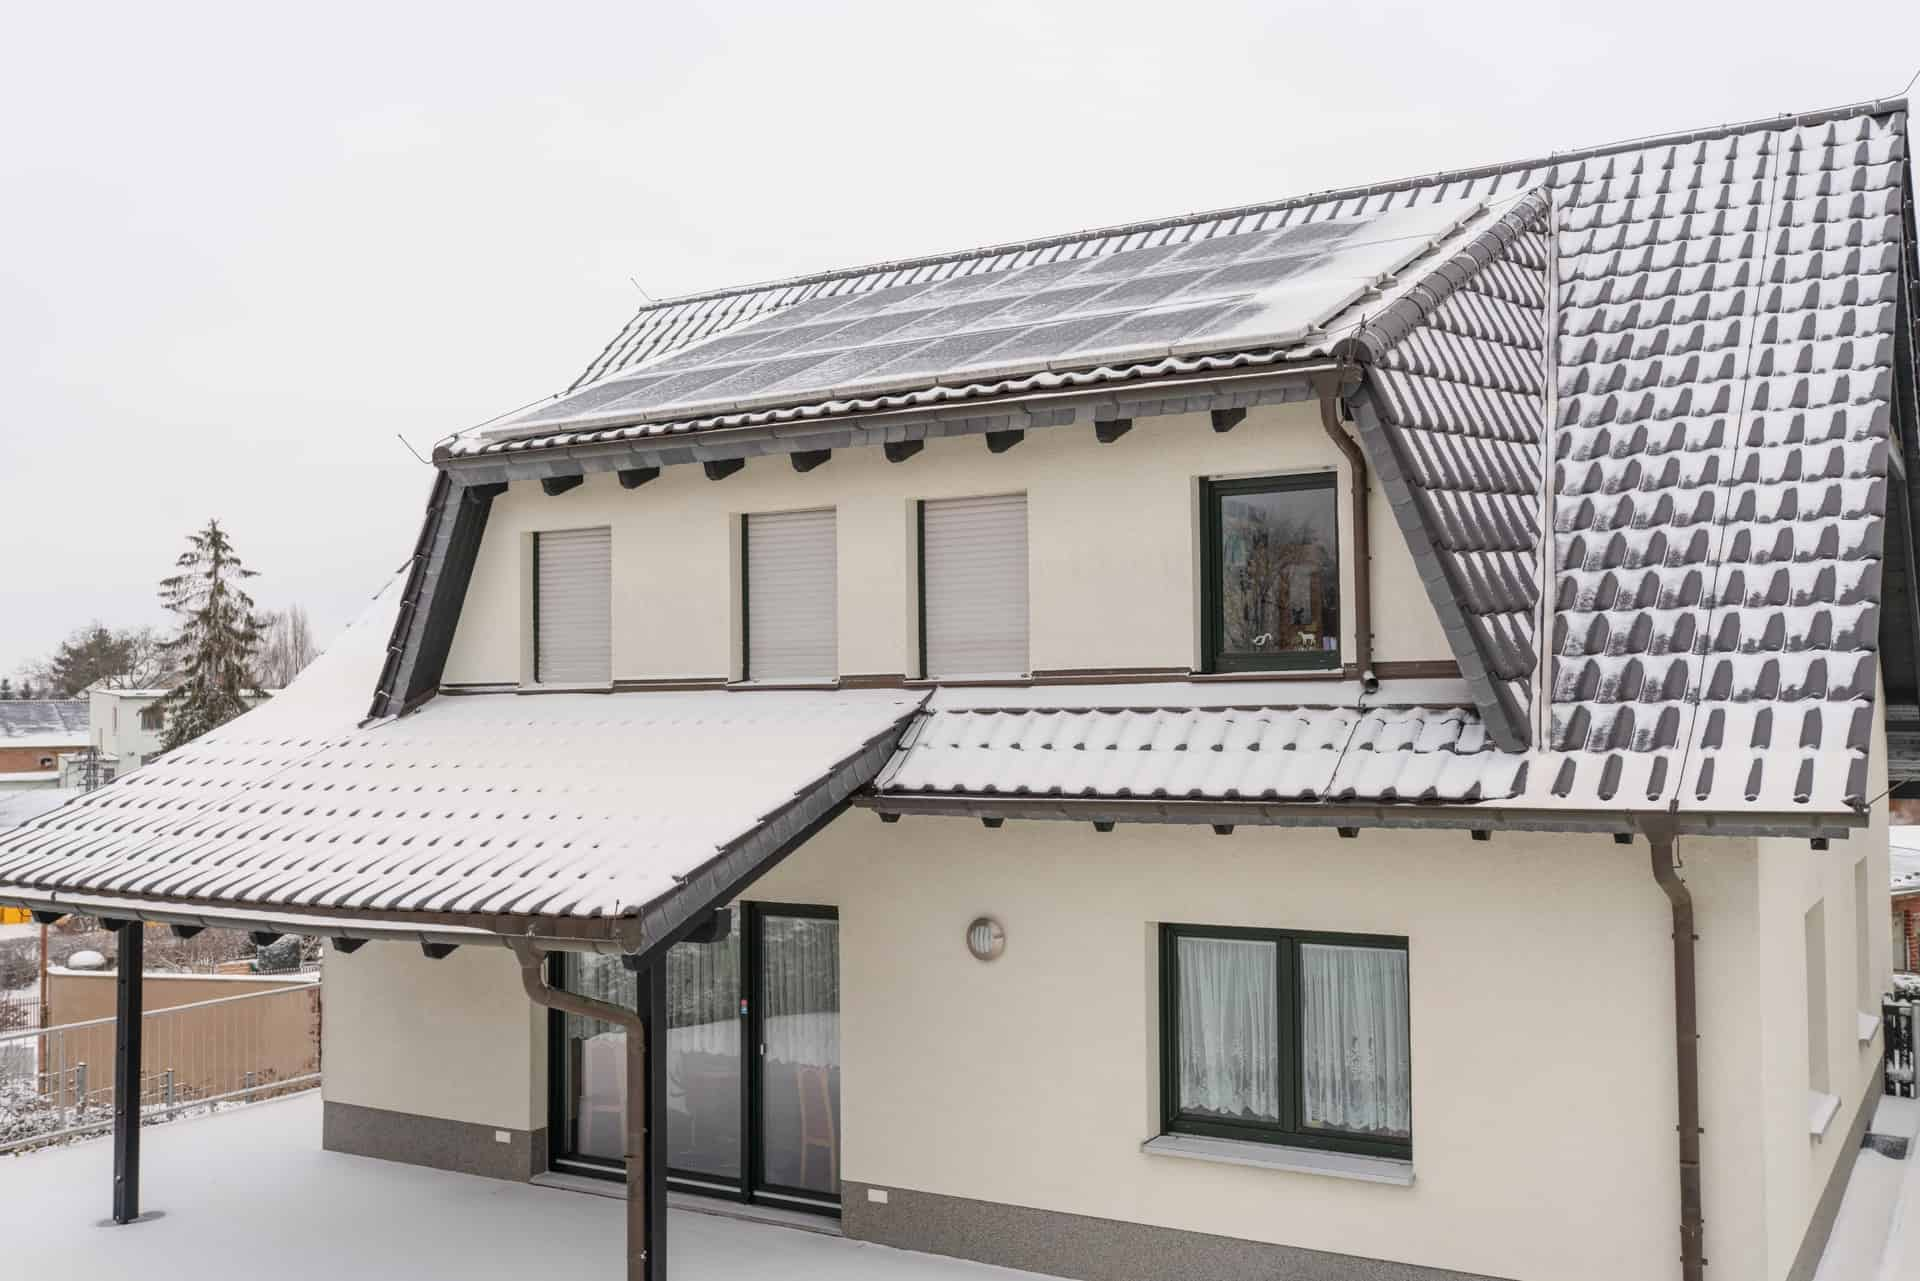 roof in winter weather